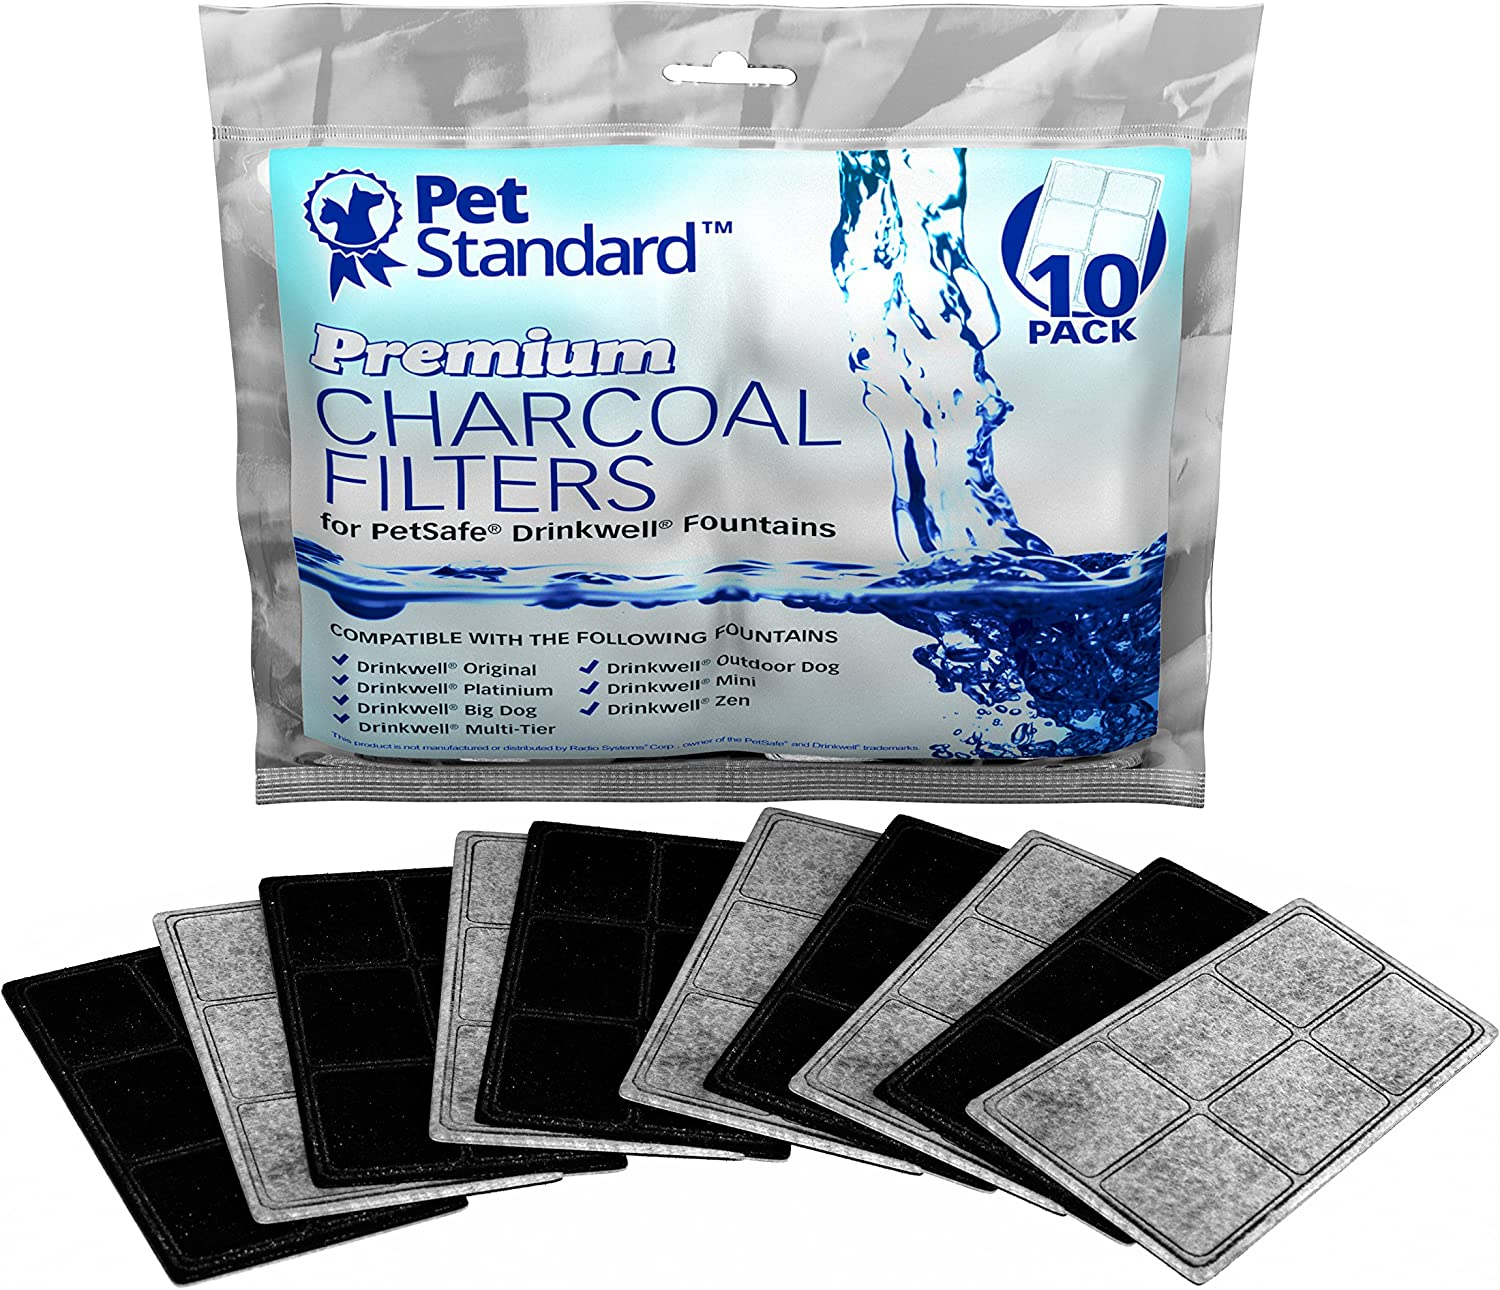 Pet Supplies : Premium Charcoal Filters for PetSafe Drinkwell Fountains, Pack of 10 :